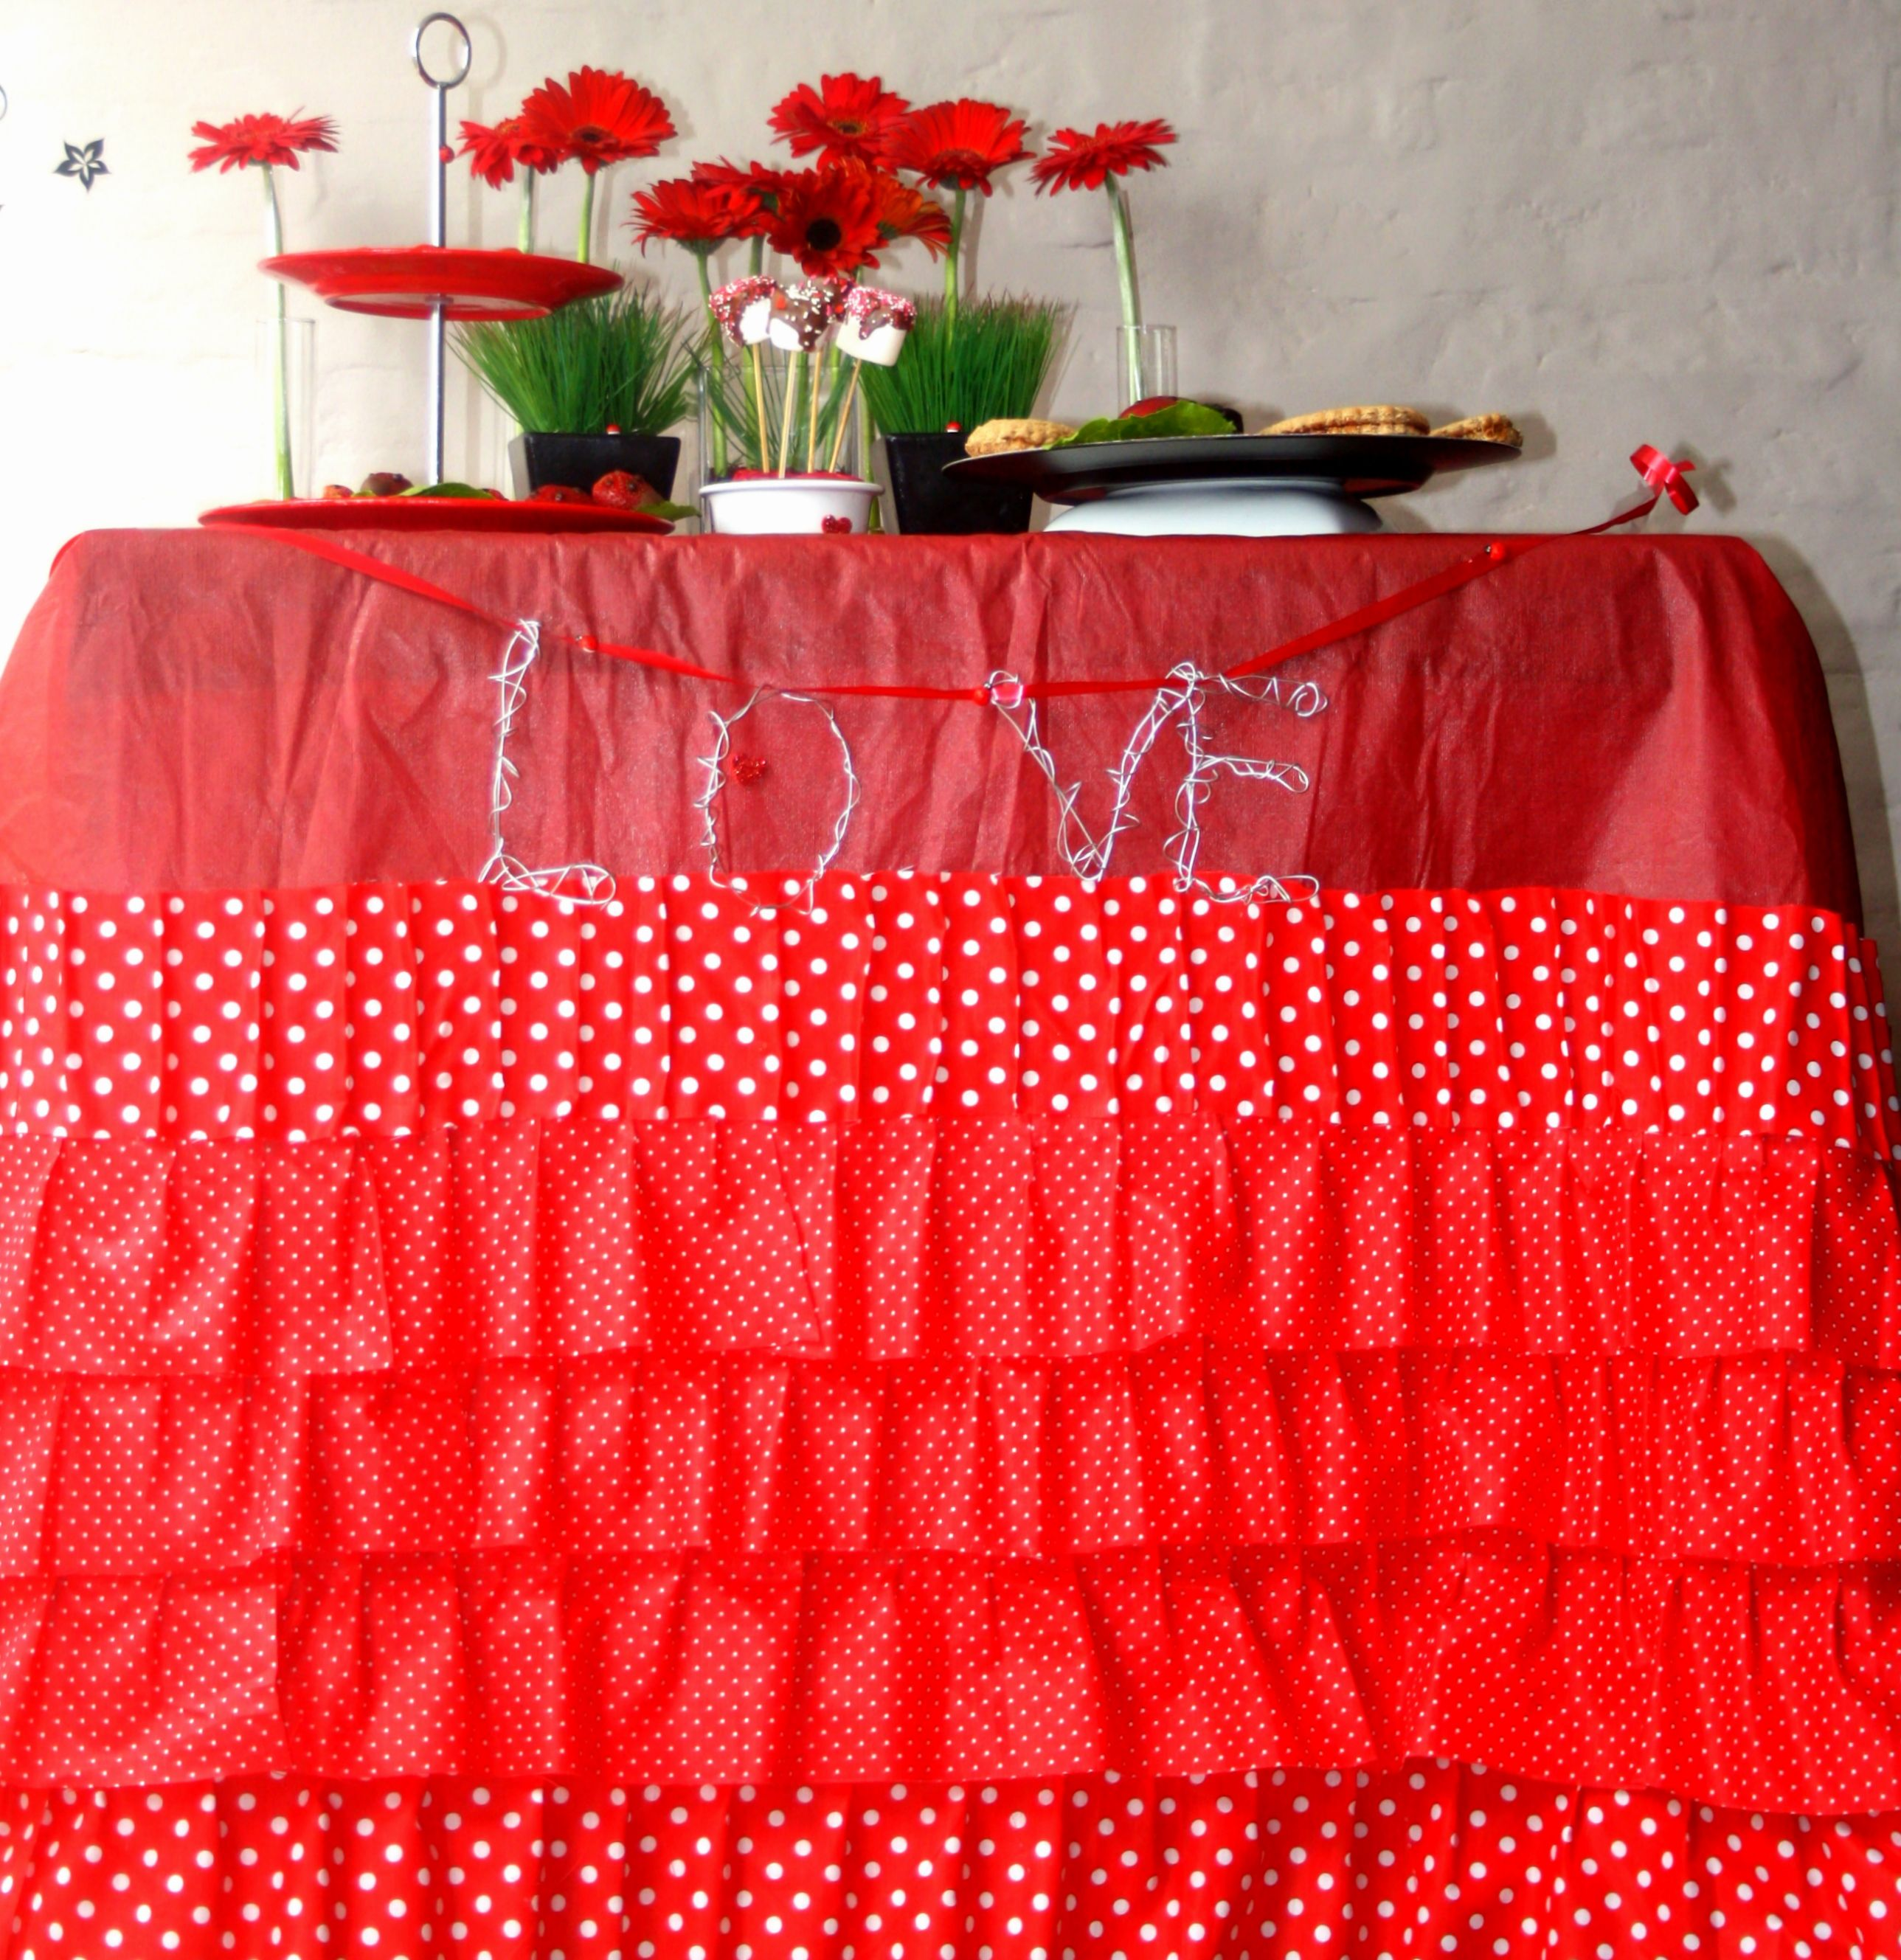 Frilly Frou Frou Ruffled Tablecloth Textile Treasures